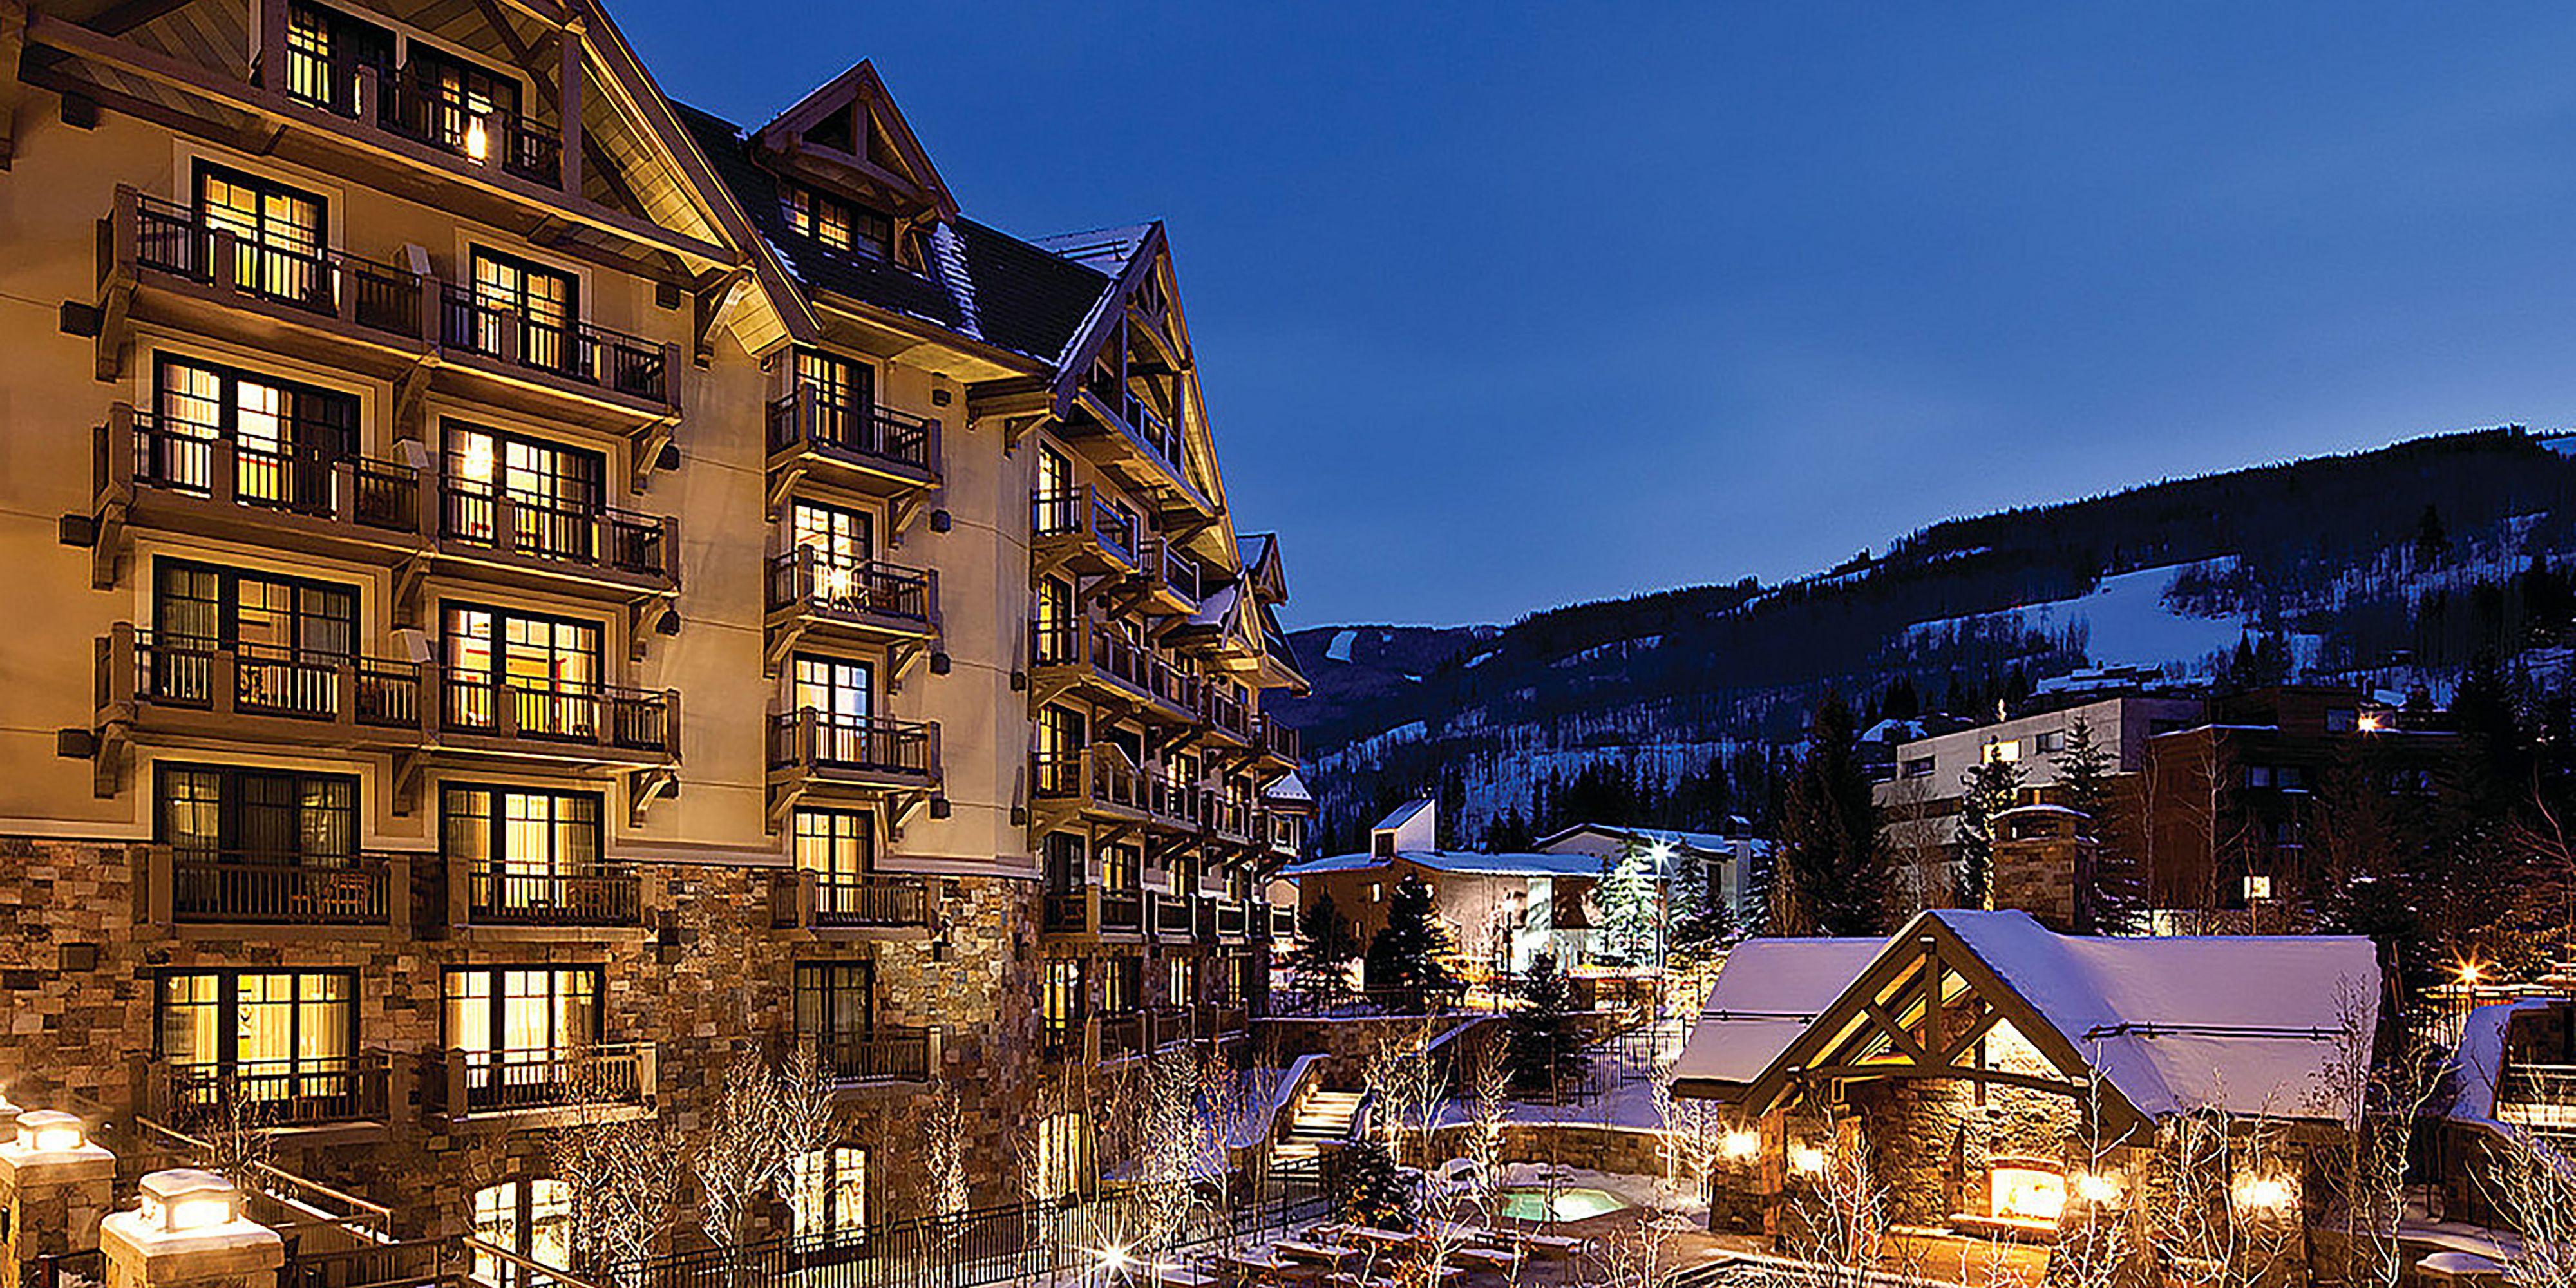 "<p><strong data-redactor-tag=""strong"">Where:</strong> Vail, CO </p><p><strong data-redactor-tag=""strong"">Why it's perfect for skiiers and non-skiiers: </strong>First, it's the Four Seasons. Second, it's Vail. All the usual ski amenities are top-notch, while the 5-star spa can't be missed. Feeling adventurous? You can head up to one of the region's legendary ""<span class=""highlight"" data-verified=""redactor"" data-redactor-tag=""span"" data-redactor-class=""highlight"">fourteeners"" (mountain peaks that exceed 14,000 feet) during an exclusive two-day adventure led by the local outdoor experts of Paragon Guides. Accompanied by llamas that carry gear and food, you'll journey to 11,000 feet to set up camp and enjoy a gourmet meal prepared by the resort's chefs. (Casual.) After spending the night in characteristic Four Seasons comfort, you'll embark for the summit of Mount of the Holy Cross. Or take it easy and grab a complimentary Mercedes to tour the city, or sip mulled cider at the pool bar as you chill (warm?) in the heated water. <a href=""http://www.fourseasons.com/vail/dining/?c=t&_s_icmp=mmenu"" target=""_blank"" data-tracking-id=""recirc-text-link"">Book it</a>. </span></p>"